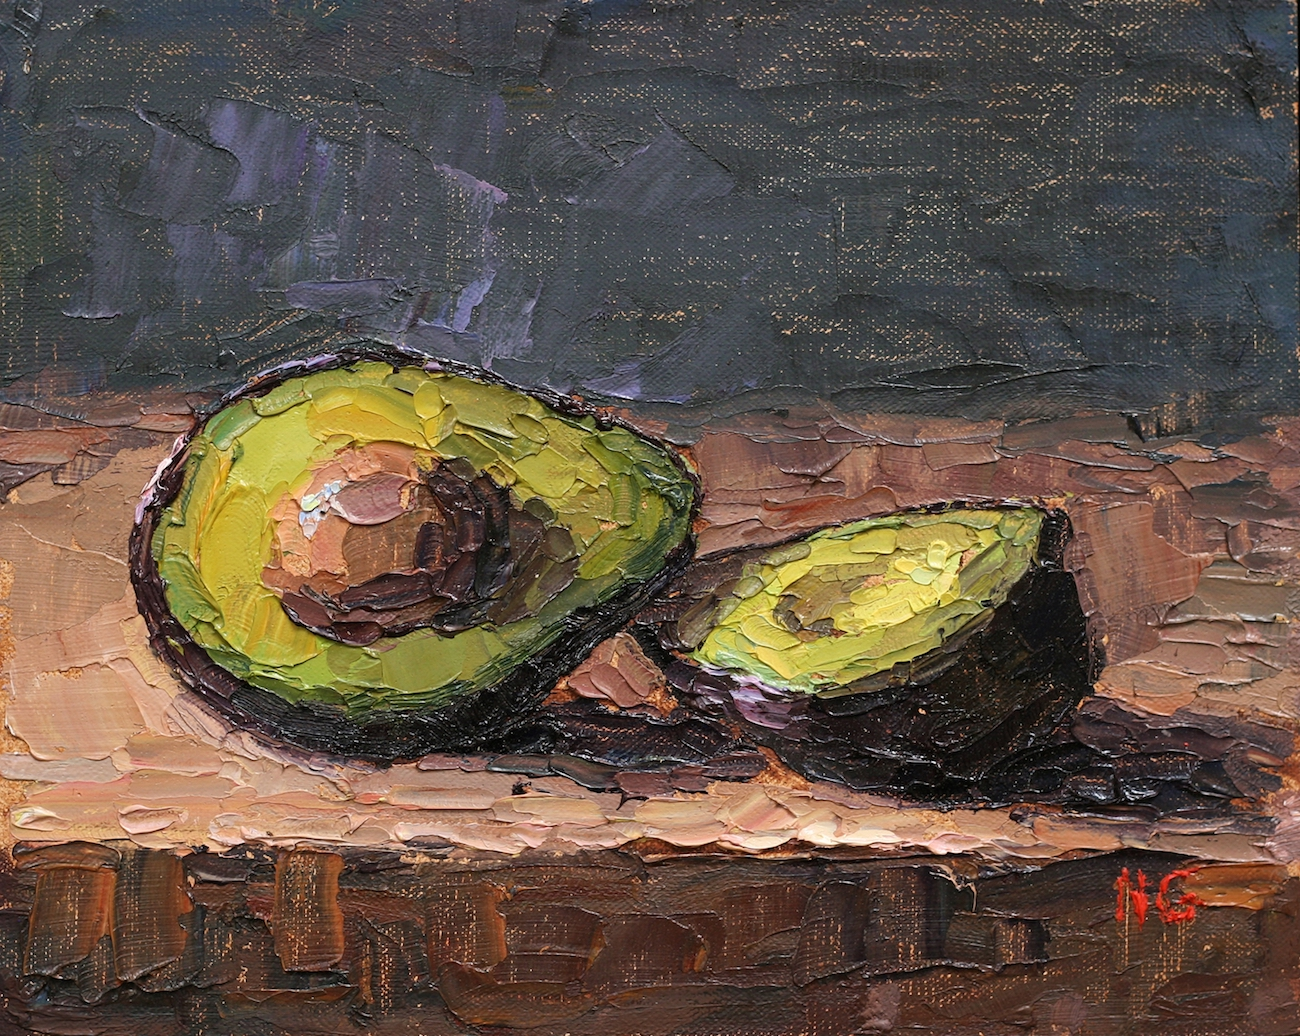 Avocados by Nadine Geller